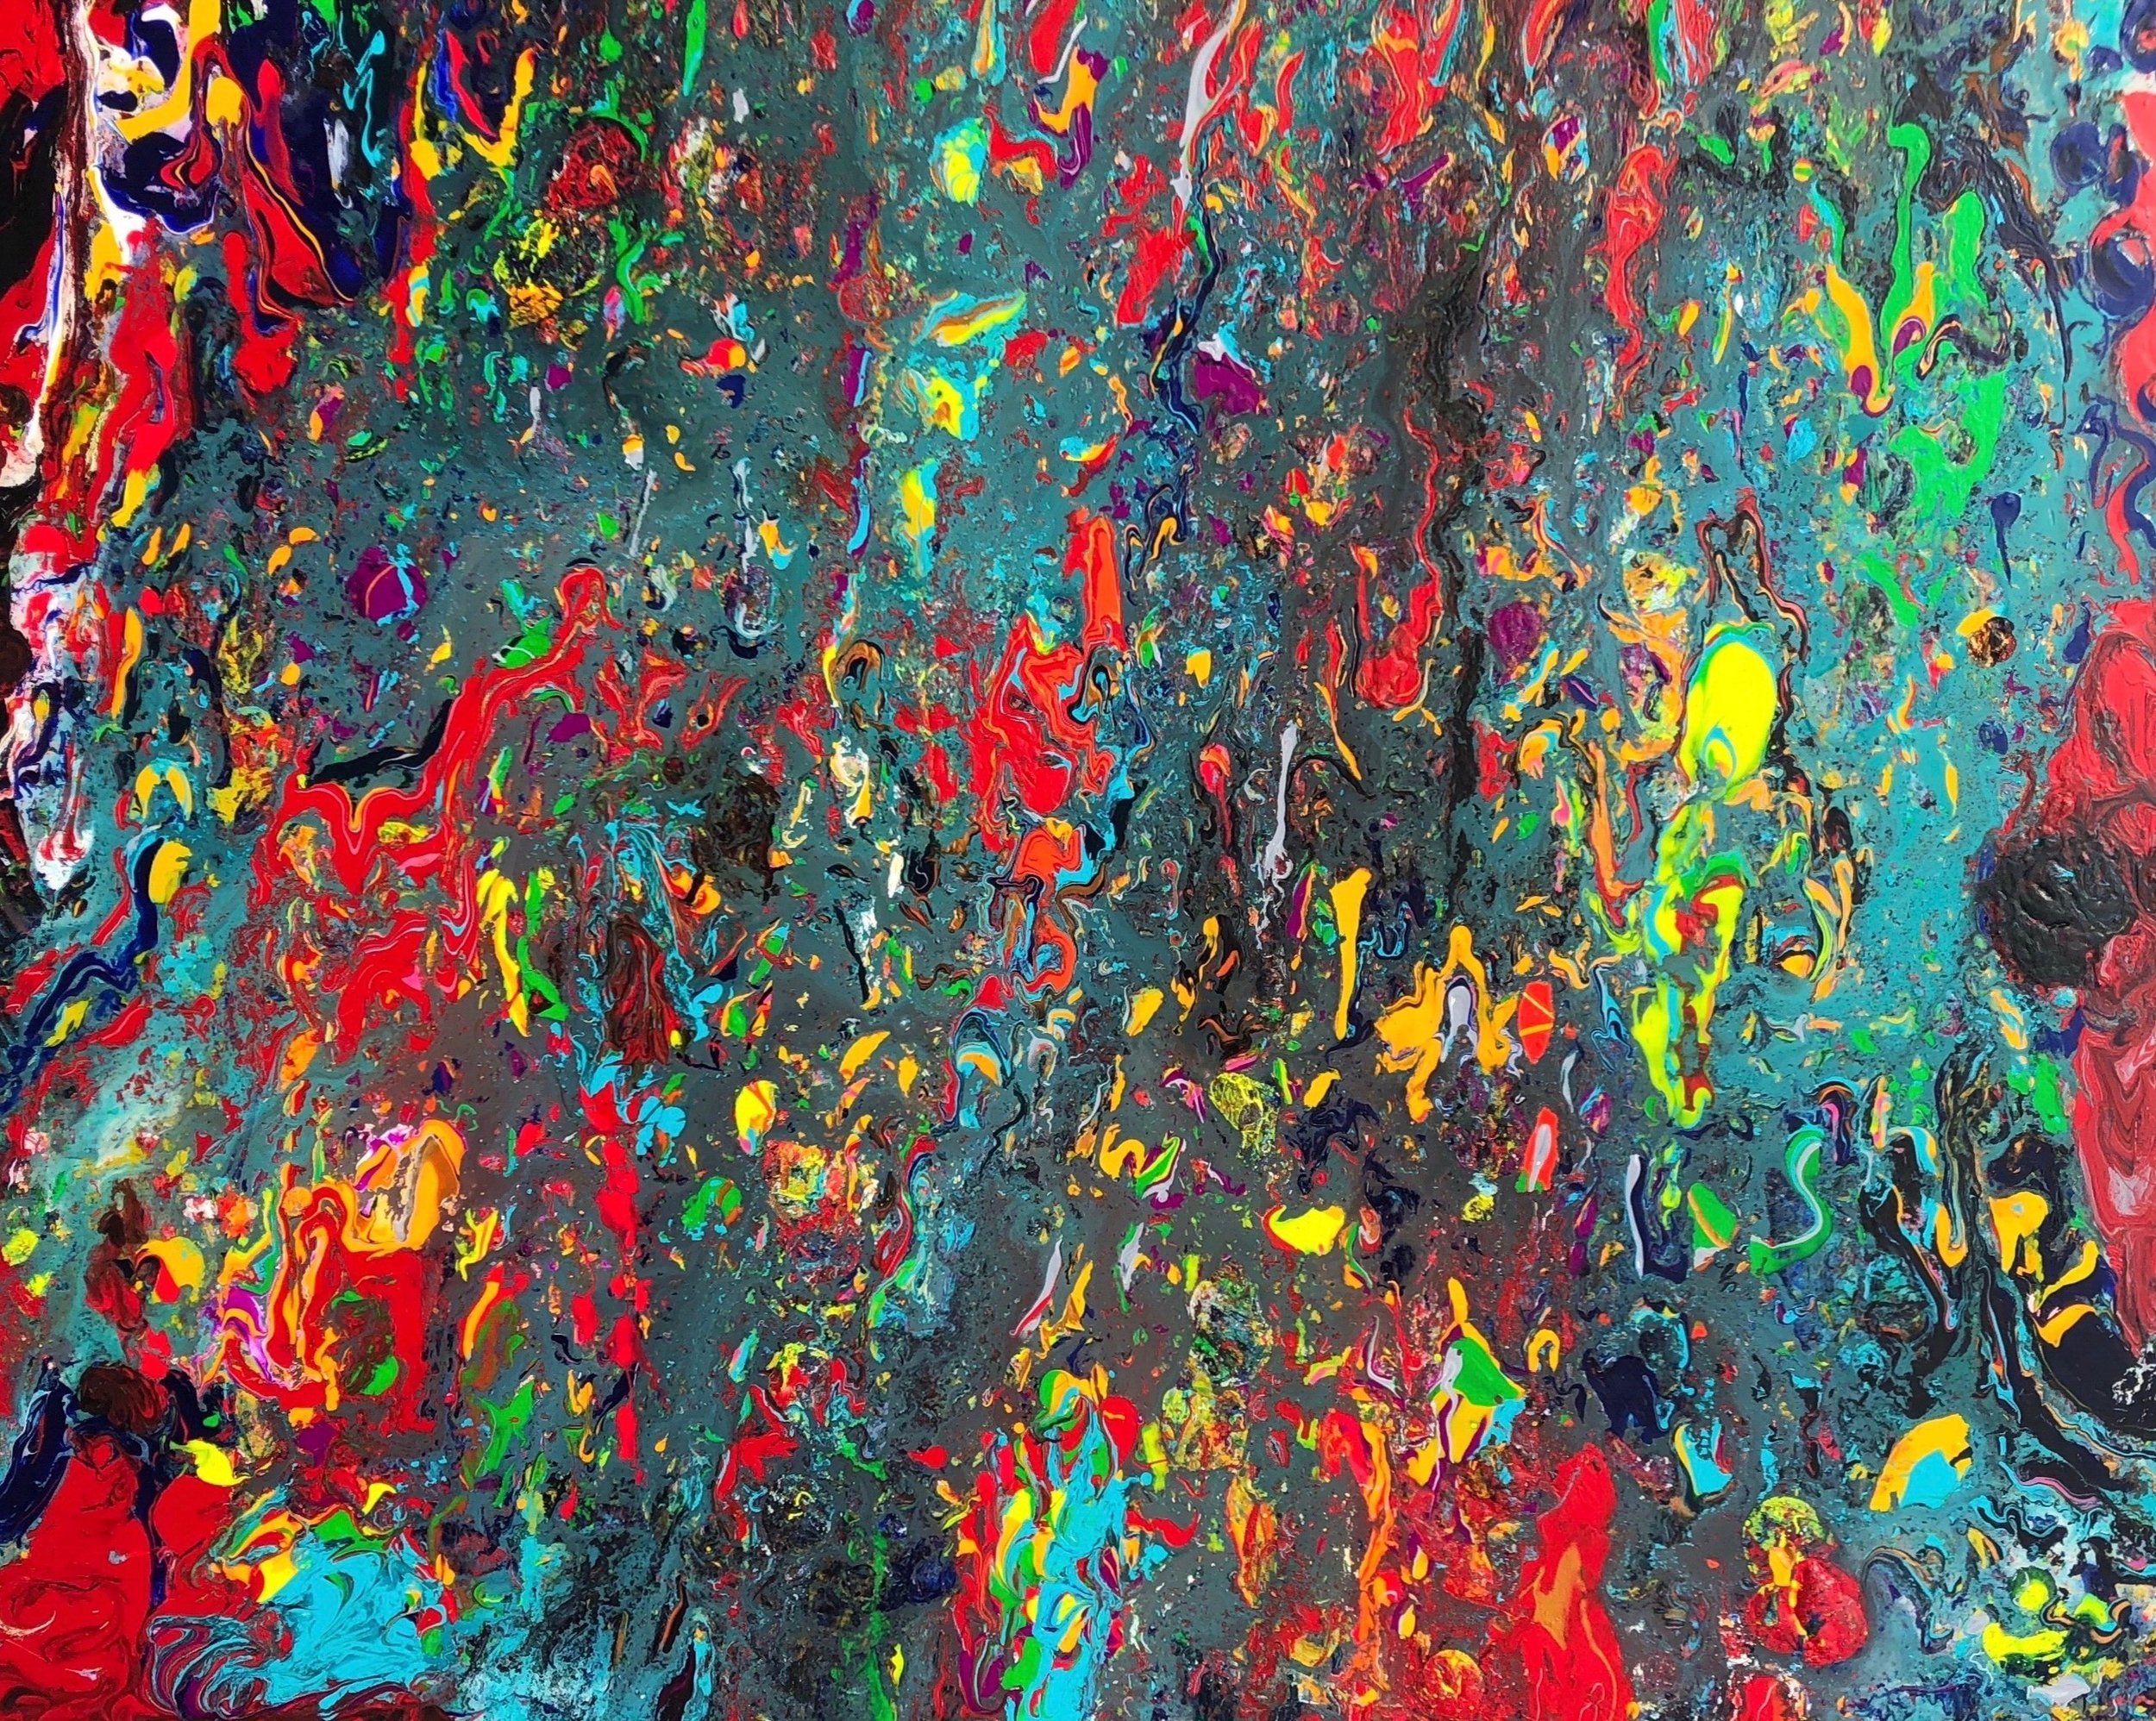 """Fire Opal"" - Mixed Media on Canvas - 48"" x 60"""